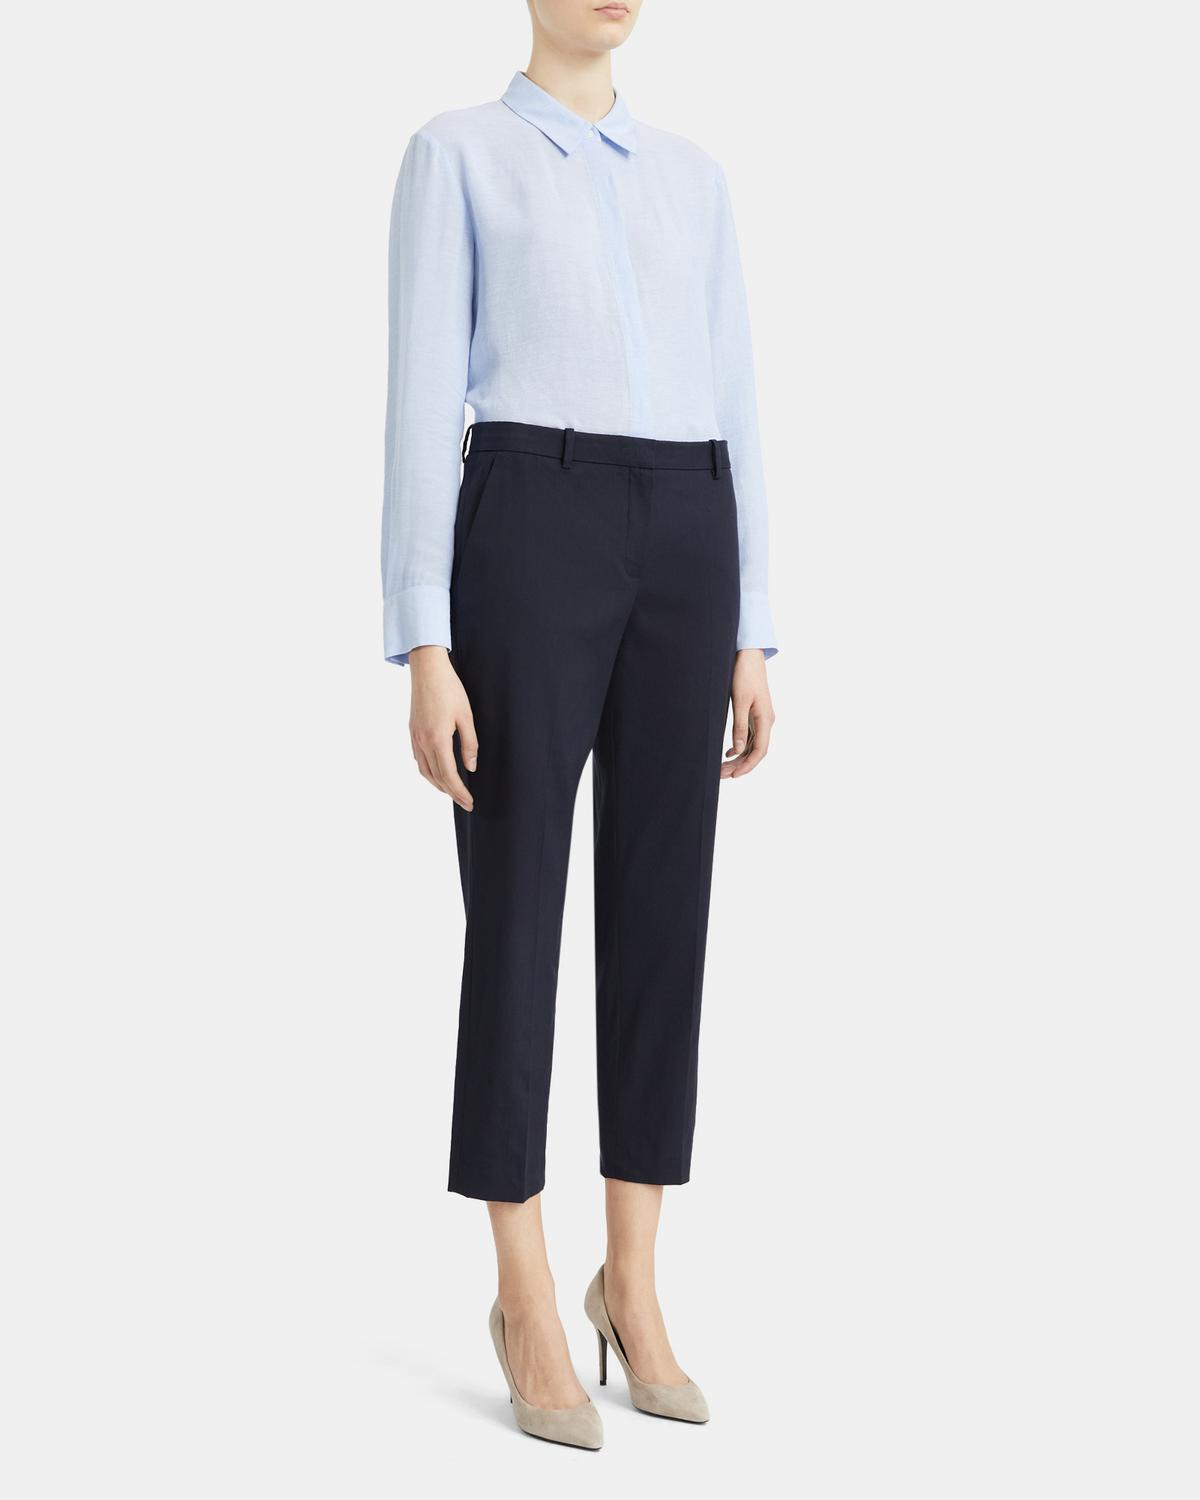 Slim Cropped Pant in Crunch Linen